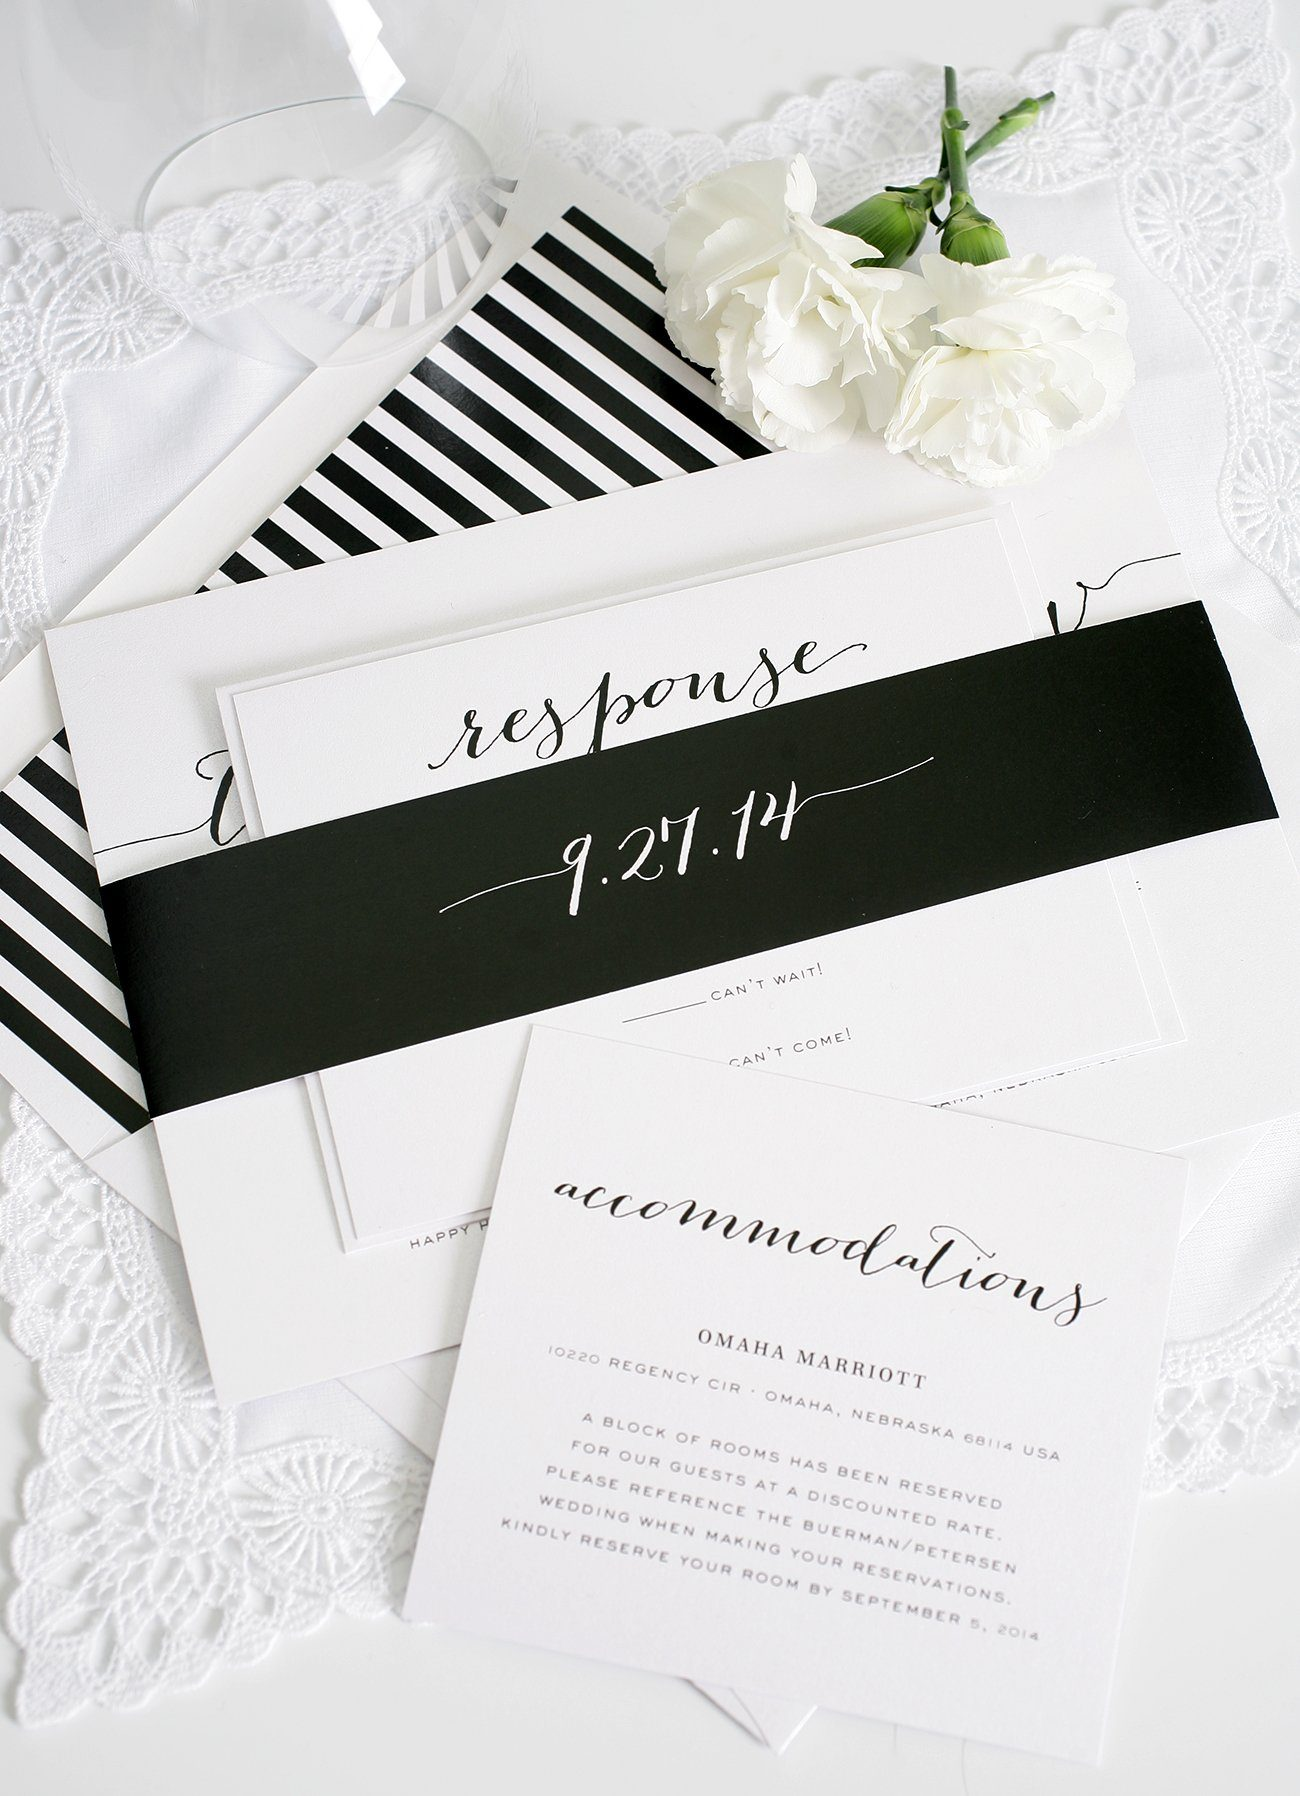 Wedding invitations in black and white